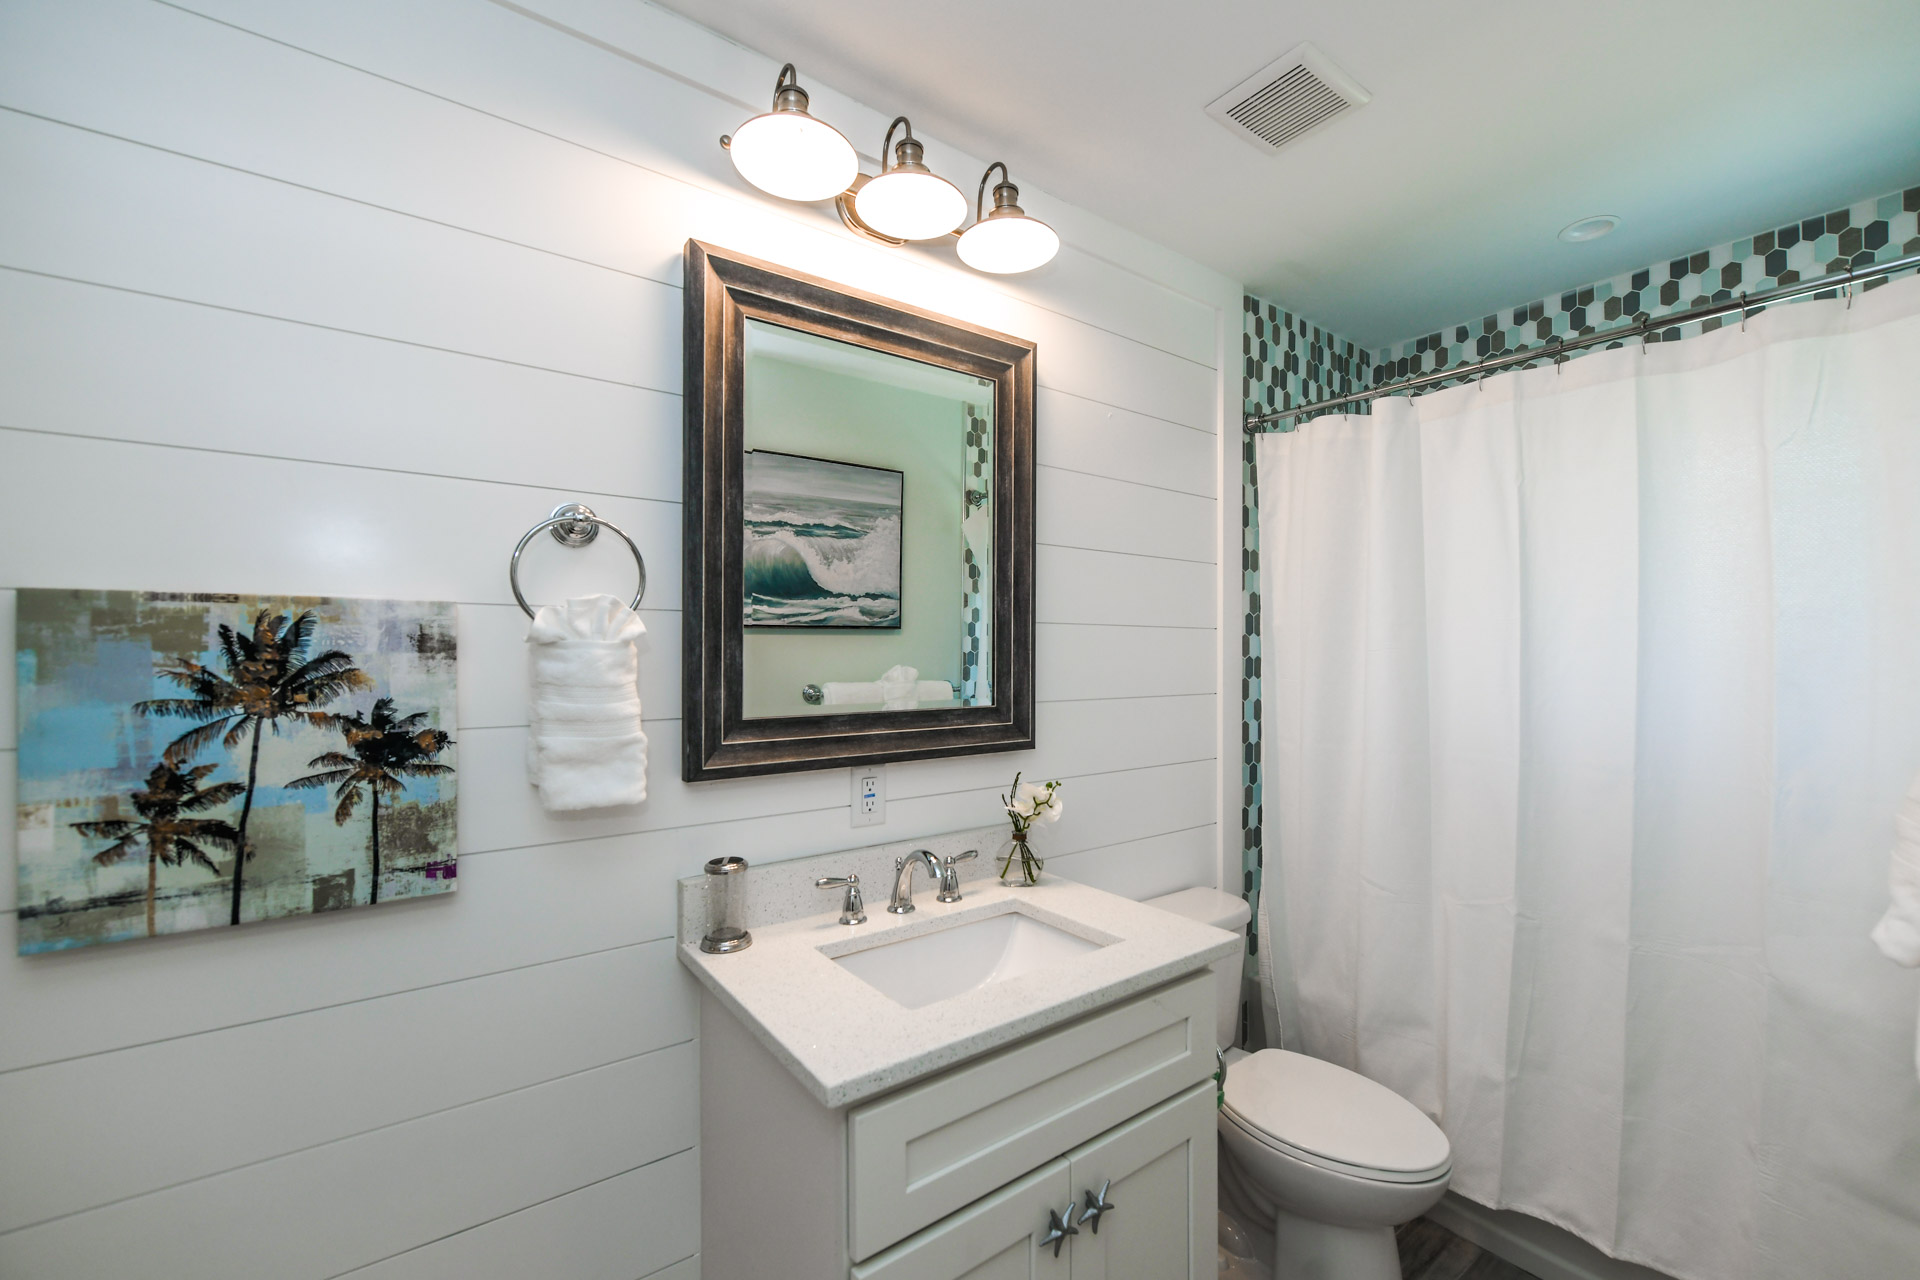 Bathroom 2- Vanity with Shower/Bathtub Combination